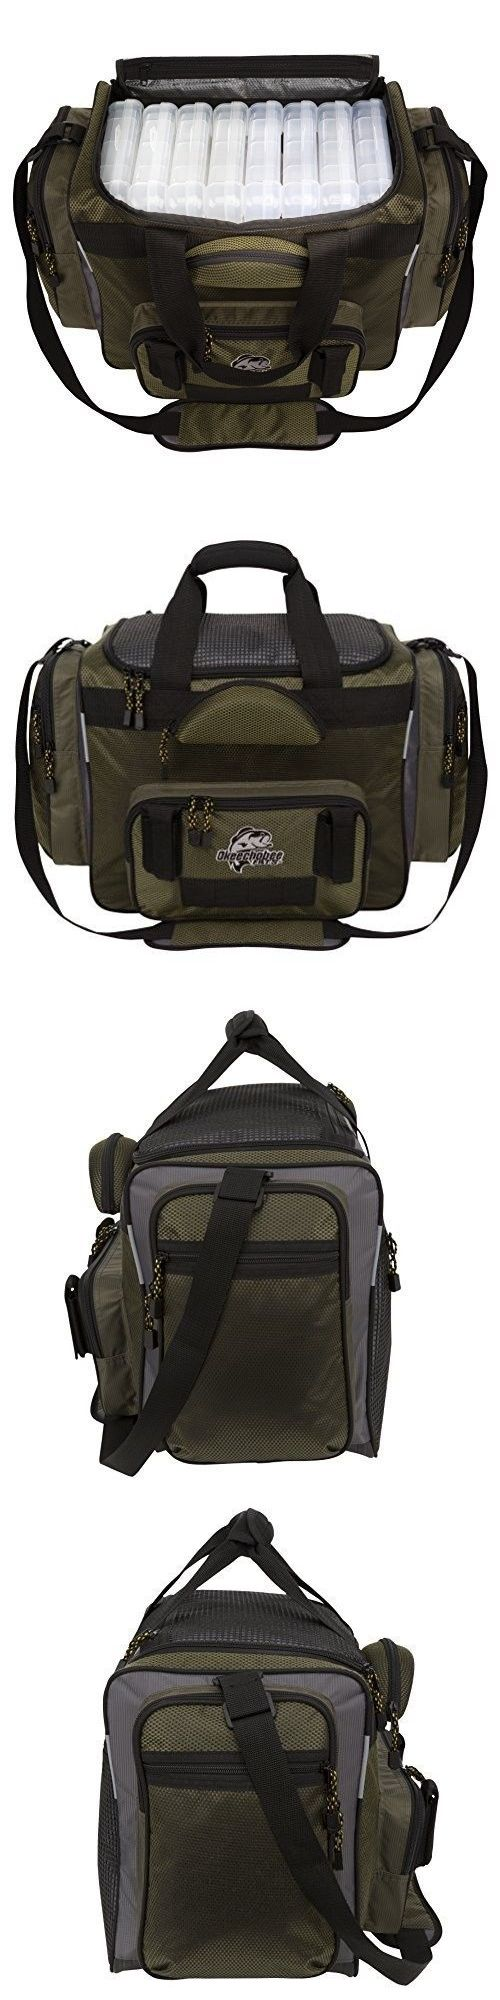 Fly Fishing Accessories 87098: Fishing Tackle Bag Soft Sided Storage Organizer Water Resistant Fabric Carry All -> BUY IT NOW ONLY: $55.68 on eBay!